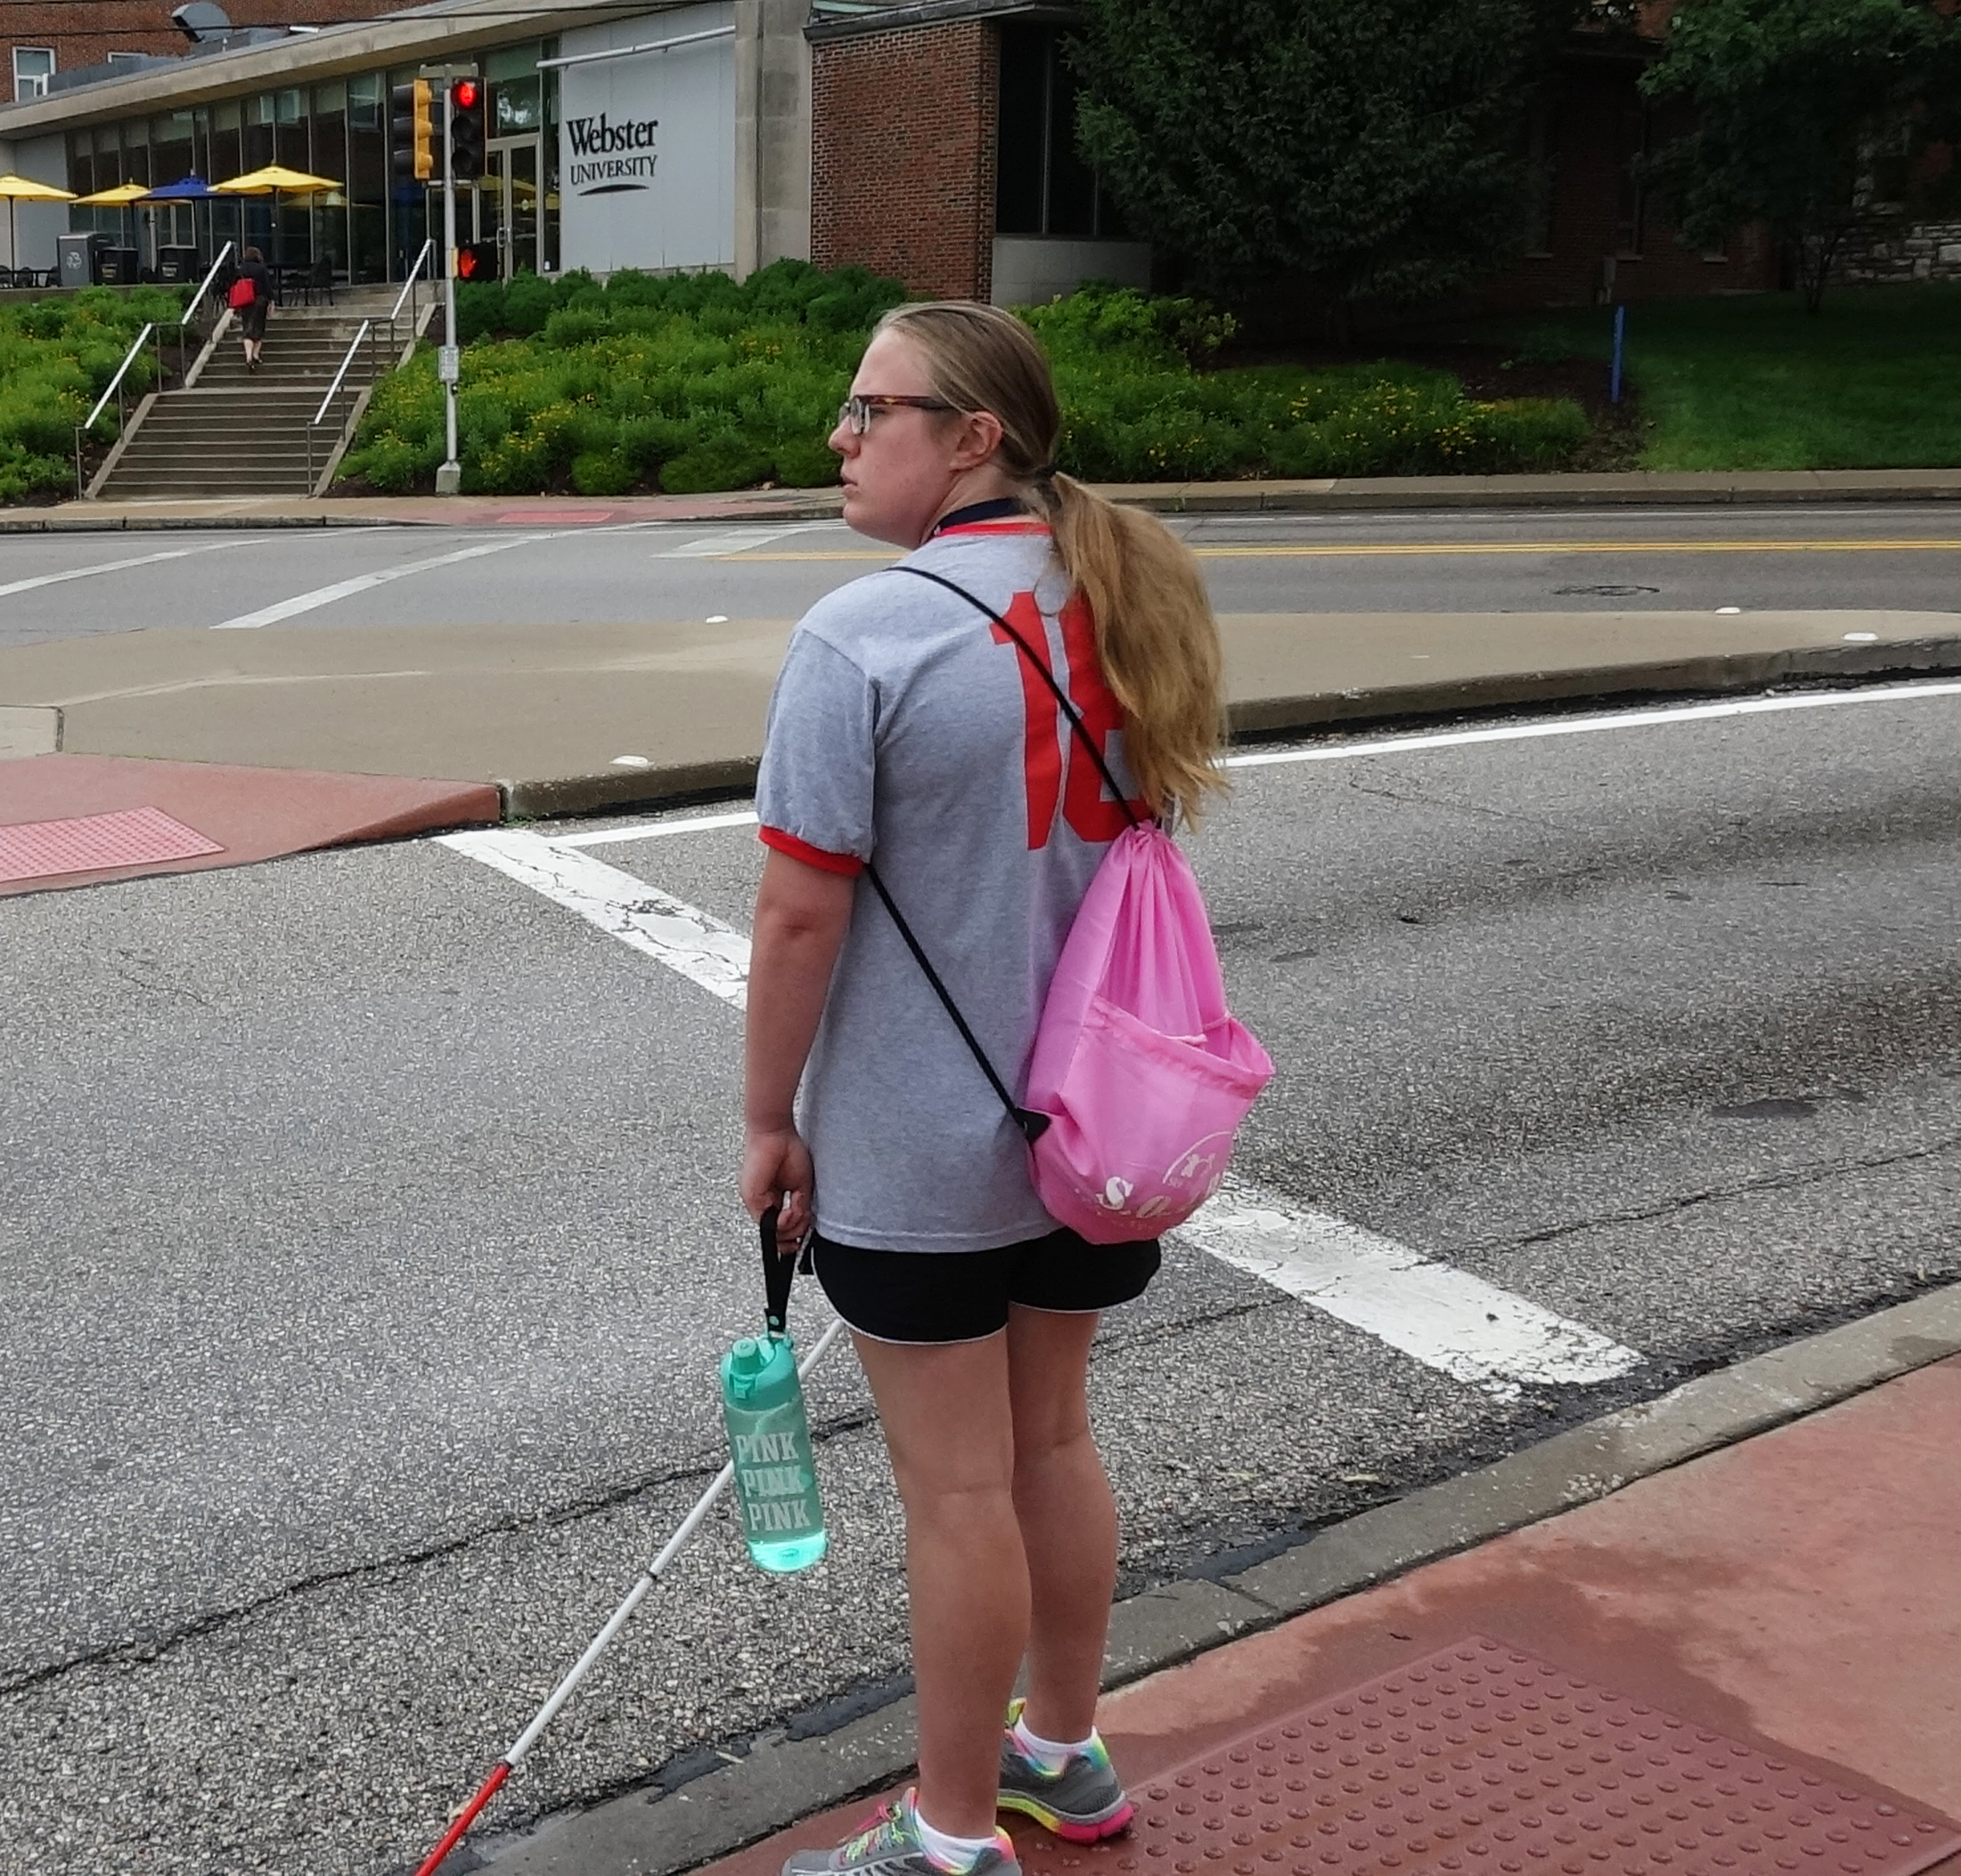 Kristin Completes Her Daily O&M Lesson Outside Webster University.